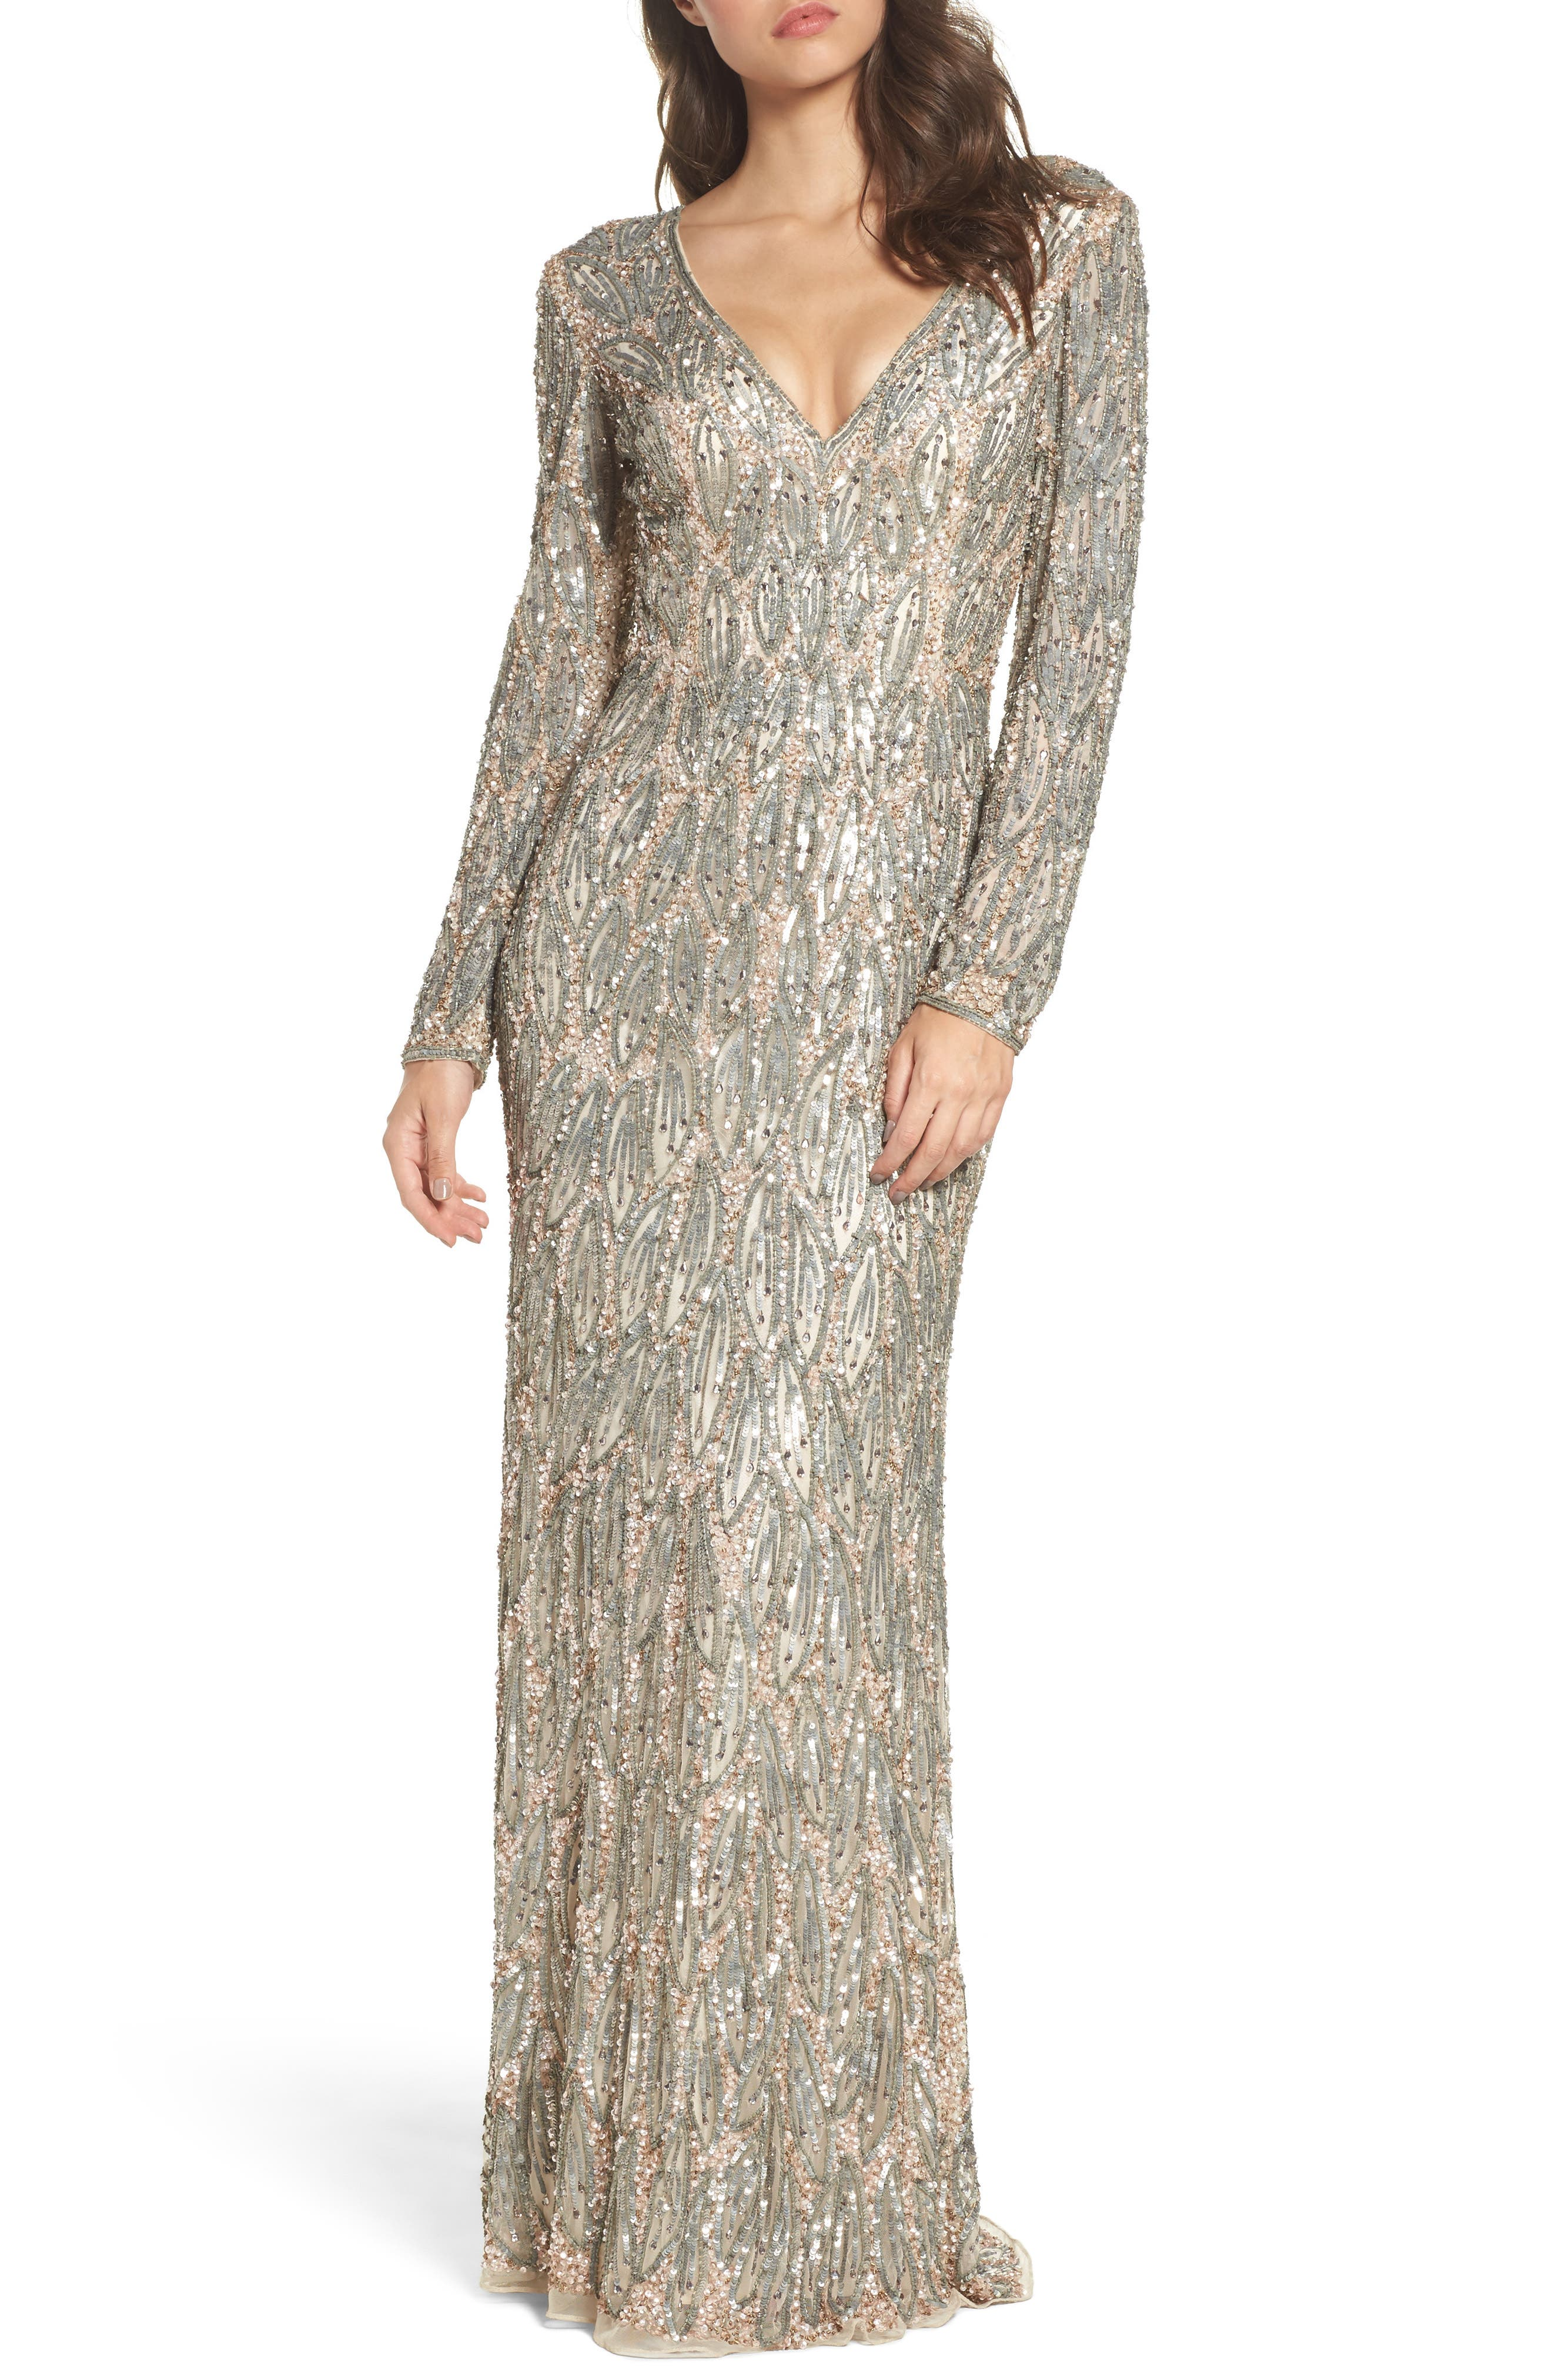 70s Prom, Formal, Evening, Party Dresses Womens MAC Duggal Beaded Long Sleeve Gown Size 0 - Grey $598.00 AT vintagedancer.com